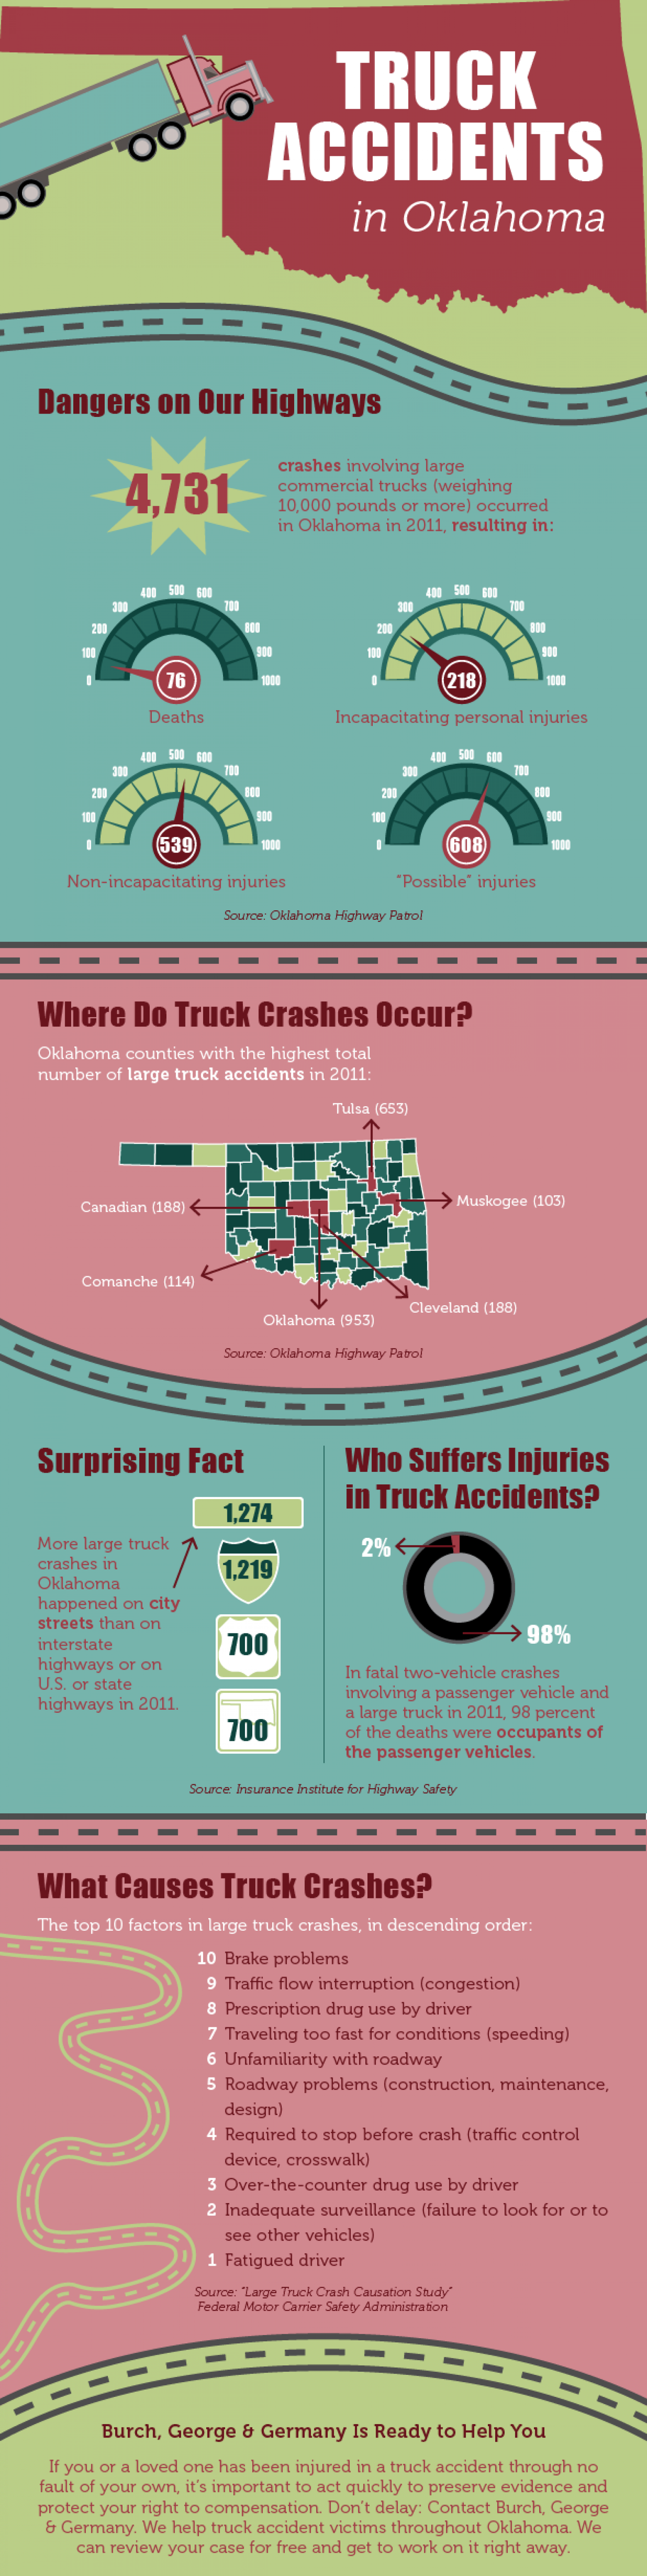 Truck Accidents in Oklahoma Infographic